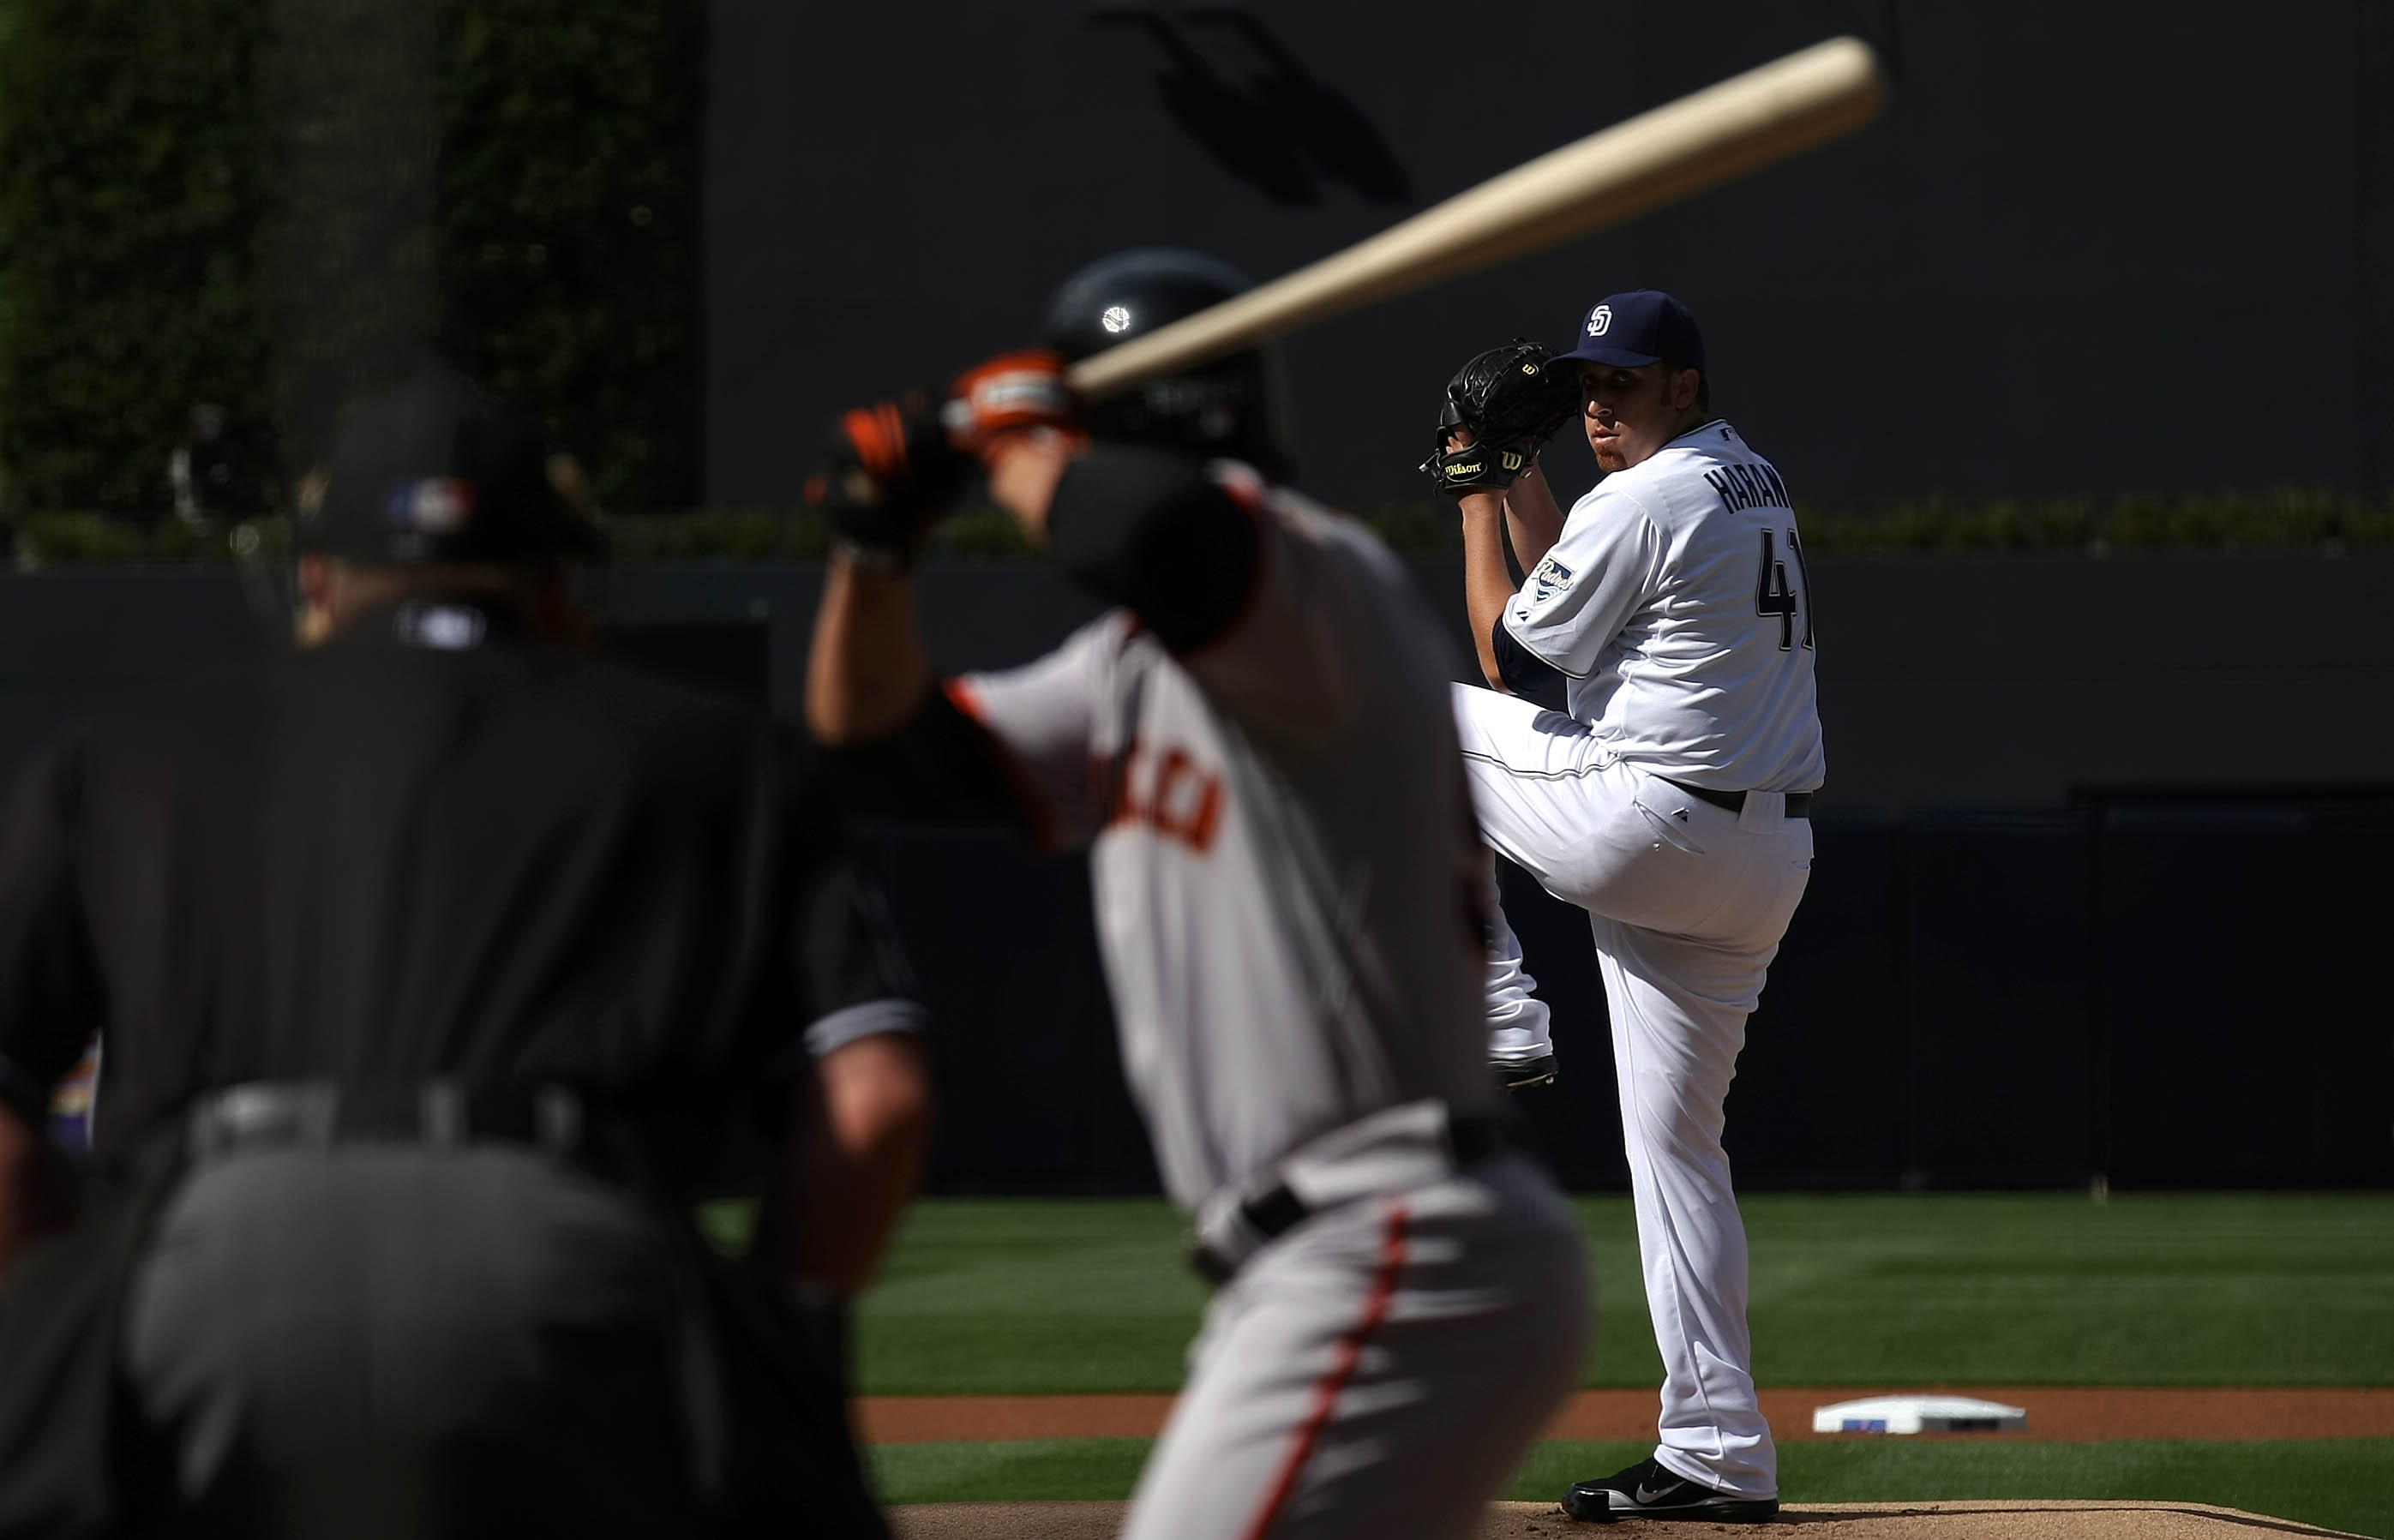 SAN DIEGO, CA - APRIL 5:  Starting Pitcher Aaron Harang #41 of the San Diego Padres throws the first pitch of the game from the mound against the San Francisco Giants during their MLB Game at Petco Park on April 5, 2011 in San Diego, California. (Photo by